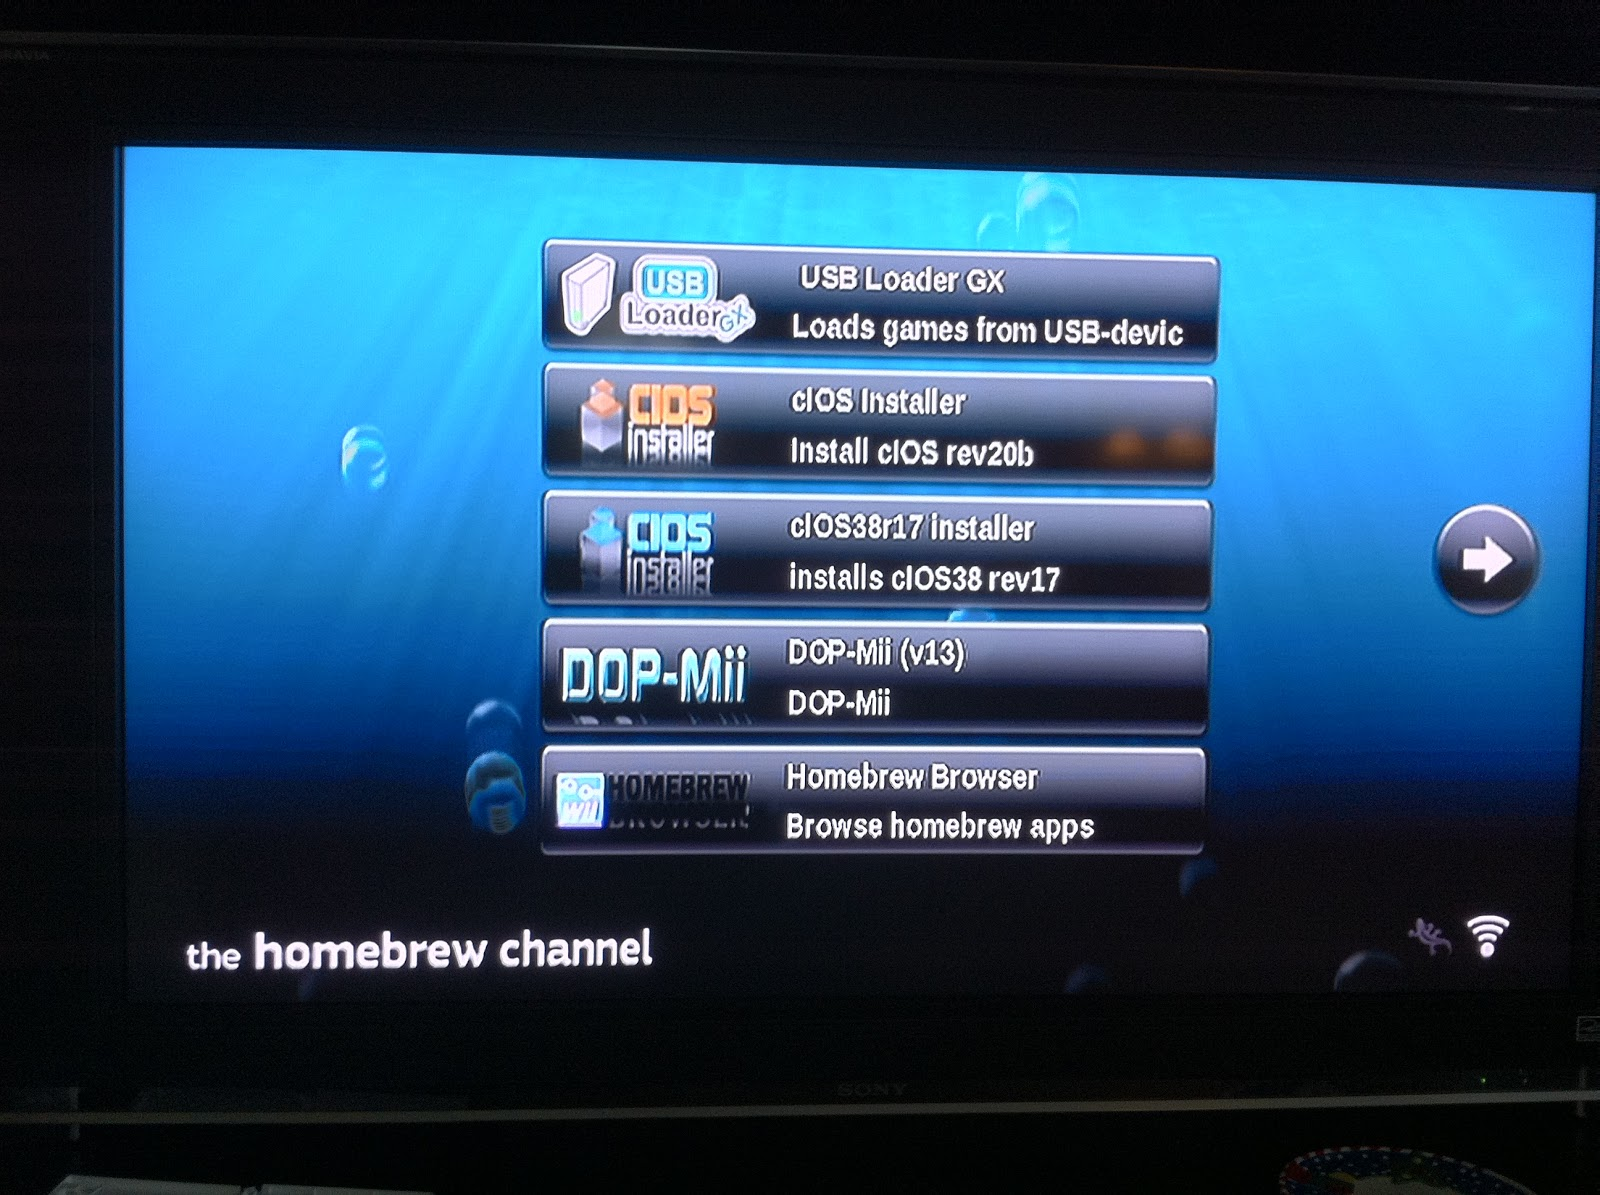 download usb loader gx homebrew browser